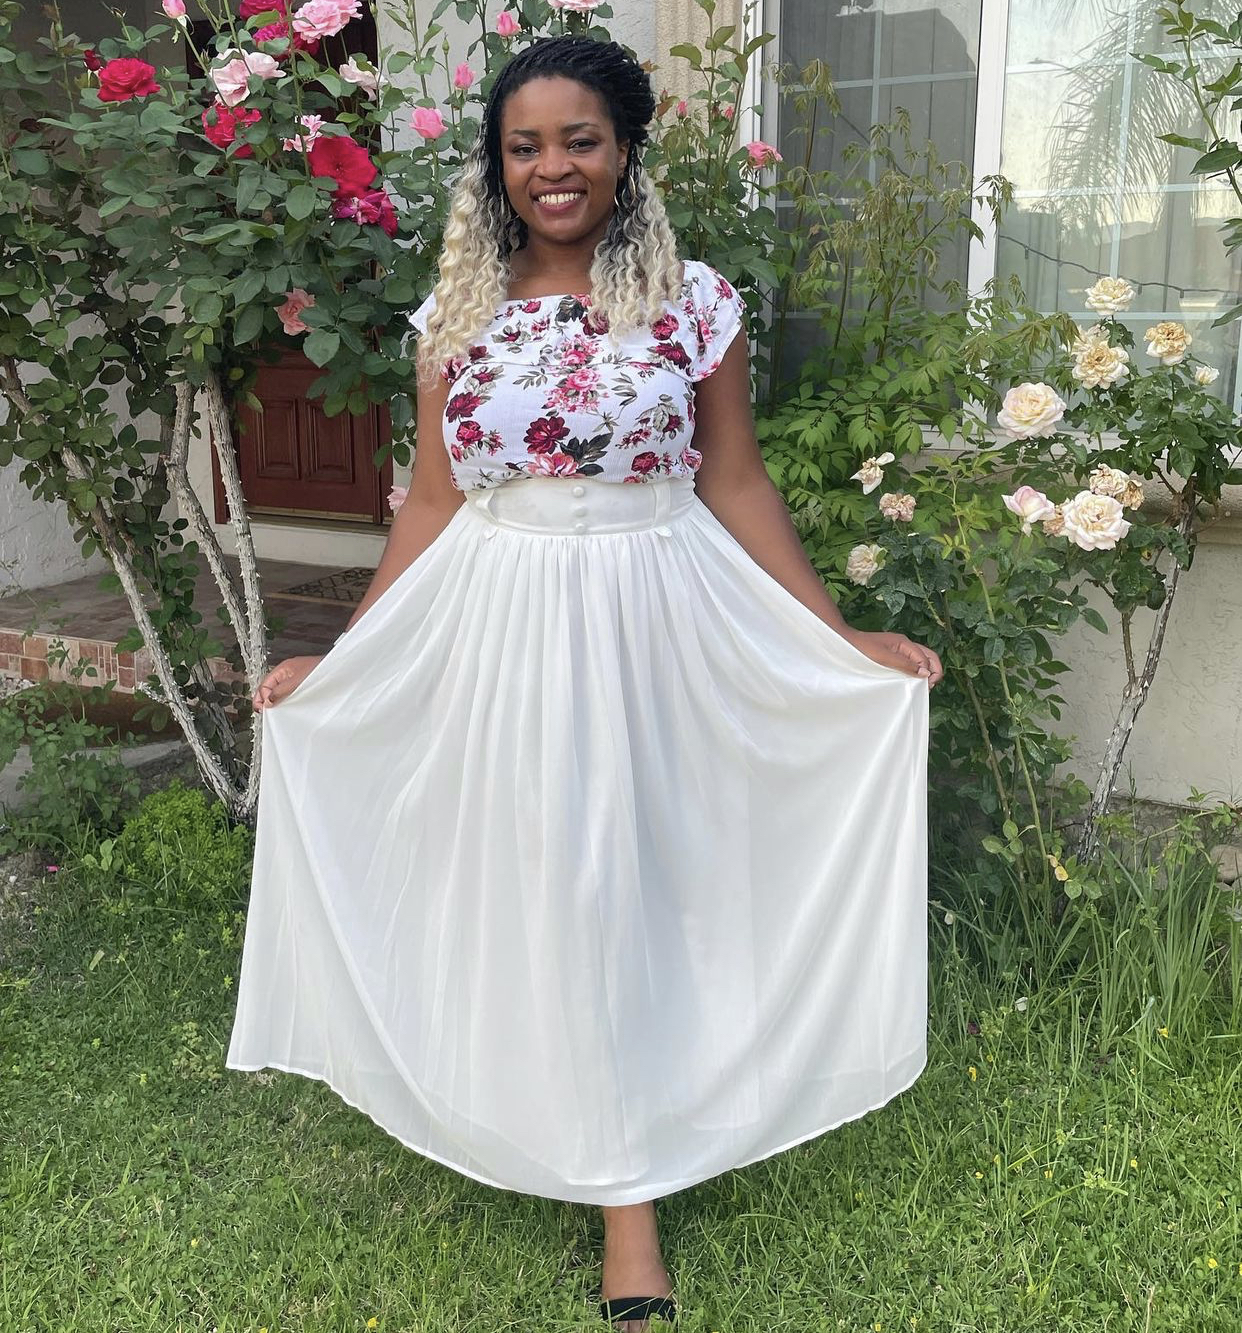 Tiffany Nwogu is our Laner of the Week!